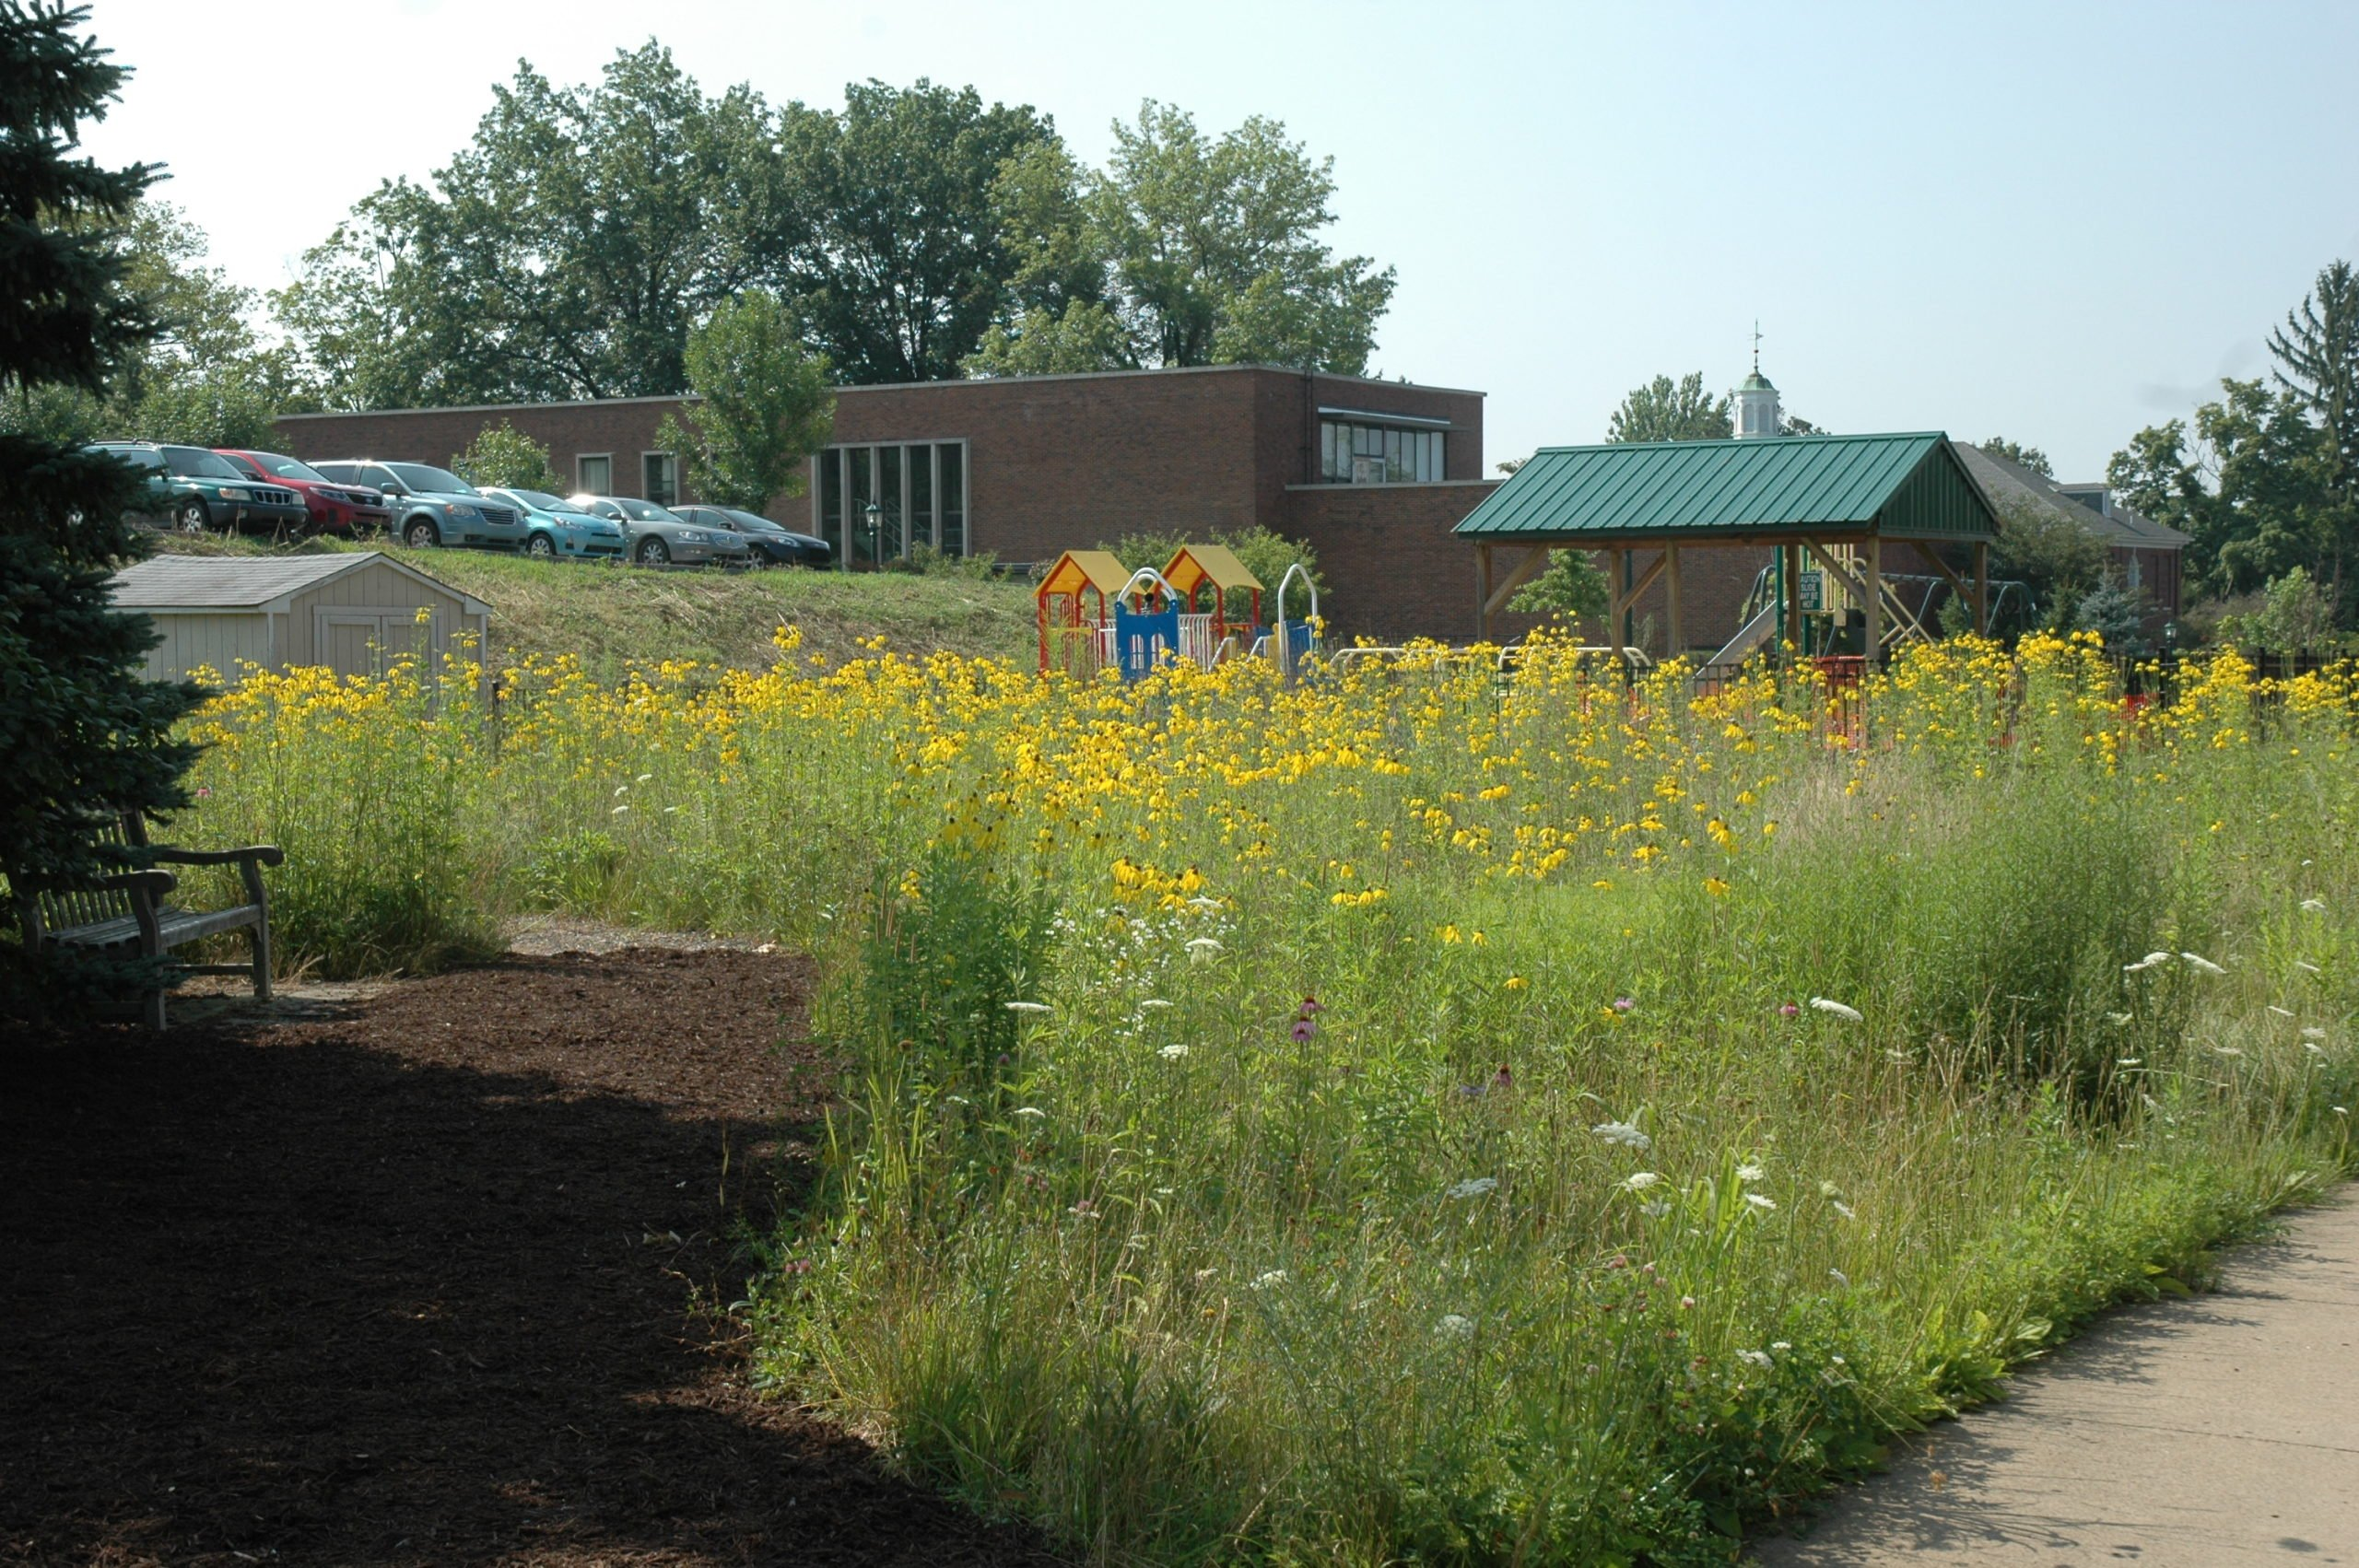 Residential, Commercial and Municipal: Why Native Vegetation Is A More Cost-Effective, Sustainable Option Than Turfgrass For Landscape Architects In Any Setting